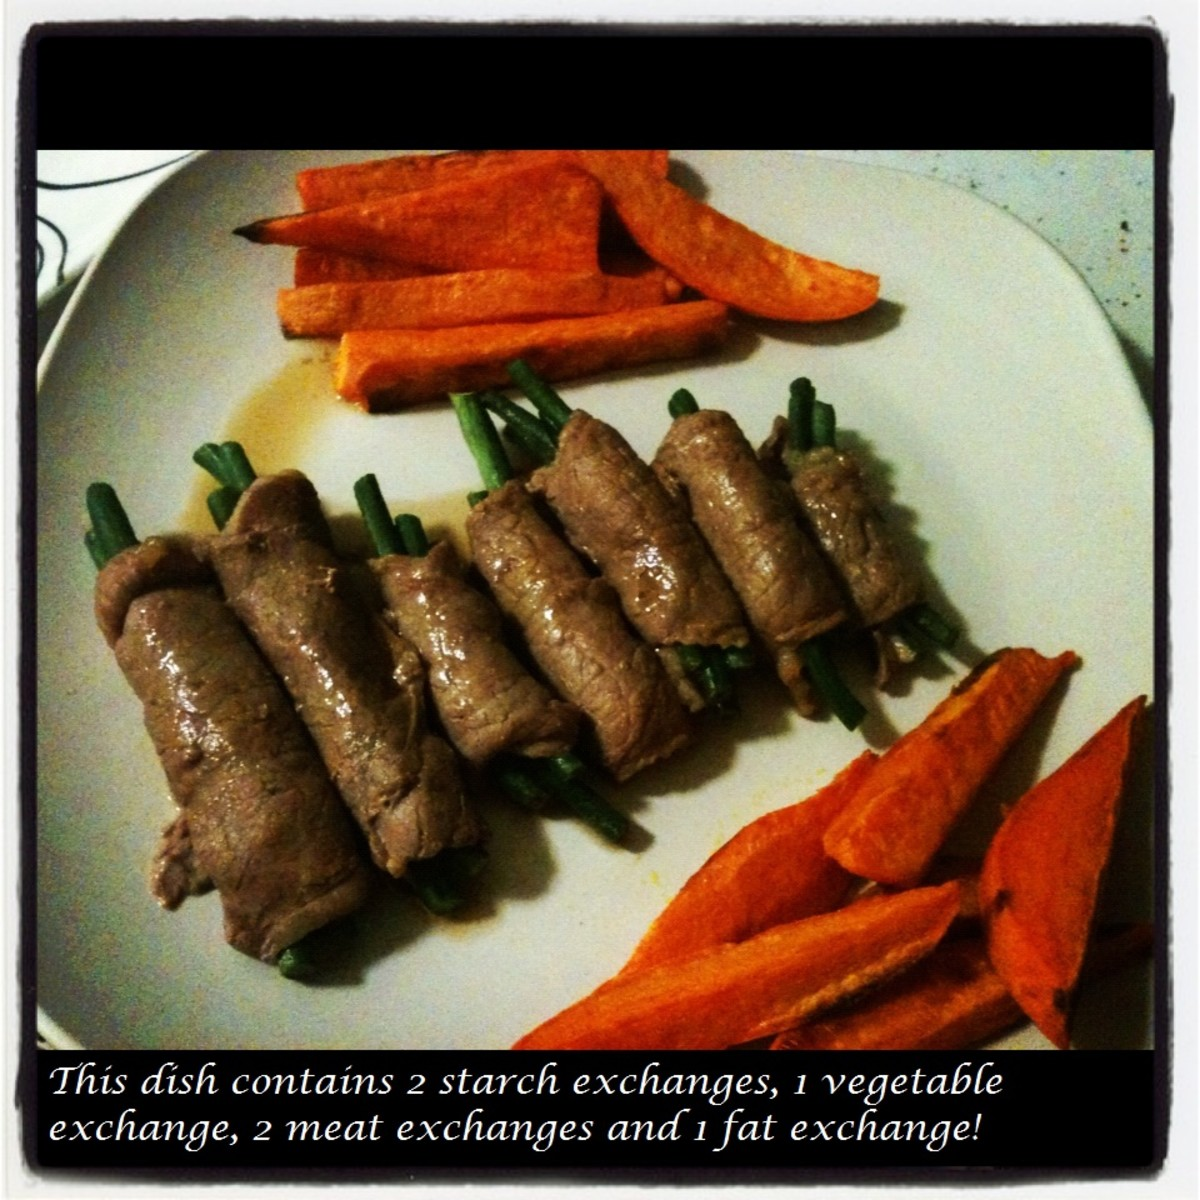 Roasted Sweet Potatoes and Green Beans Wrapped in Lean Beef